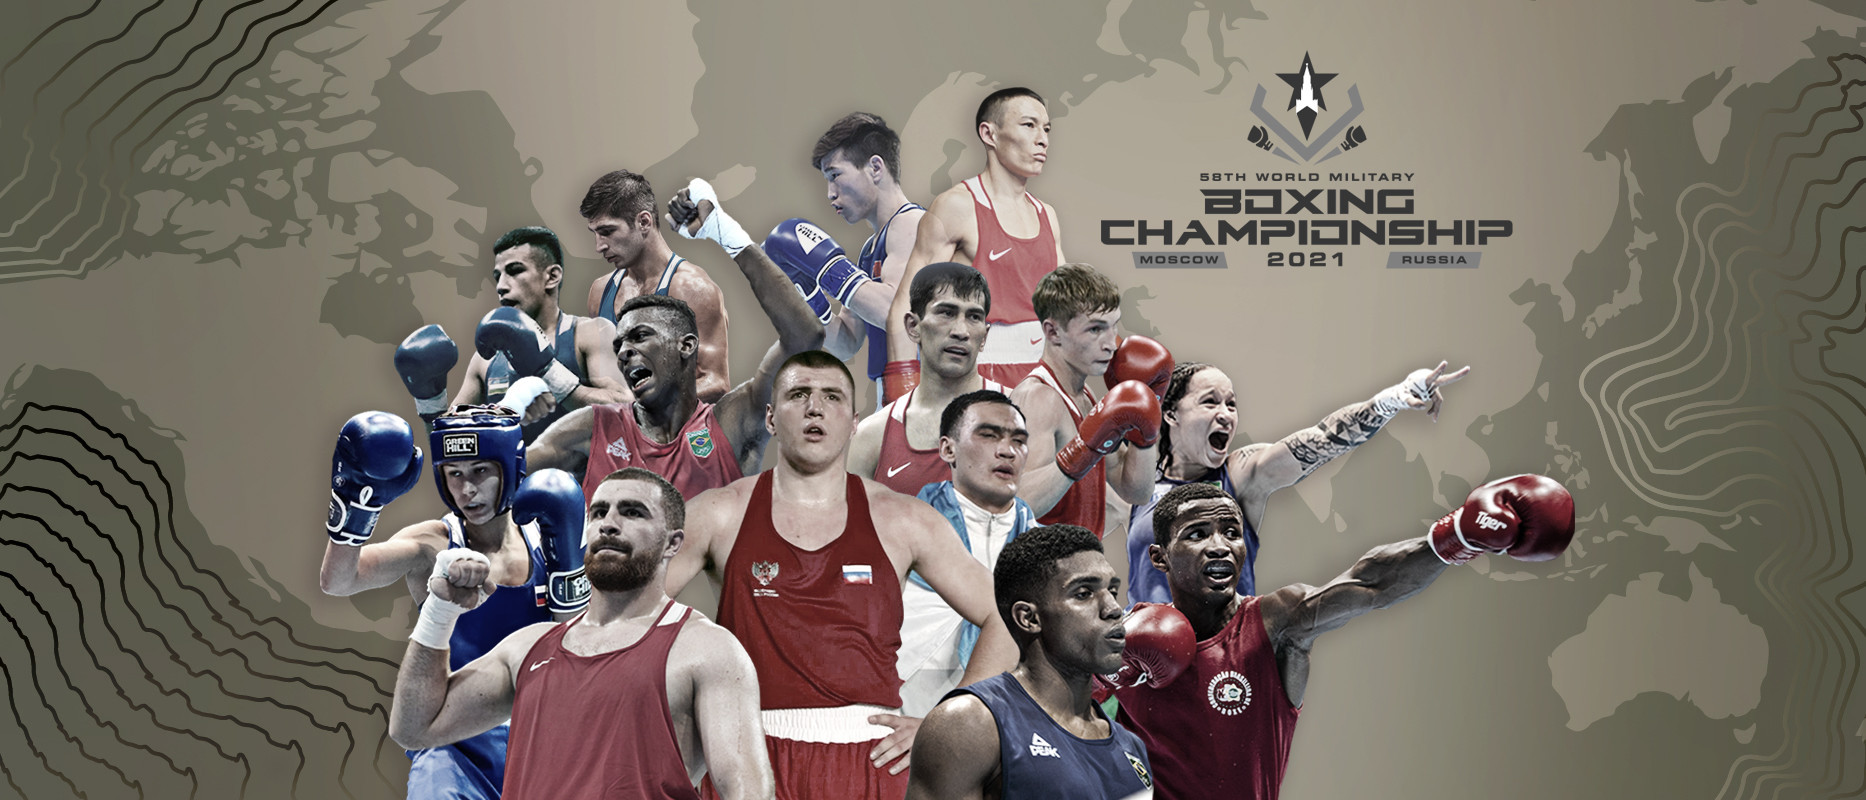 Moscow ready to host World Military Boxing Championship